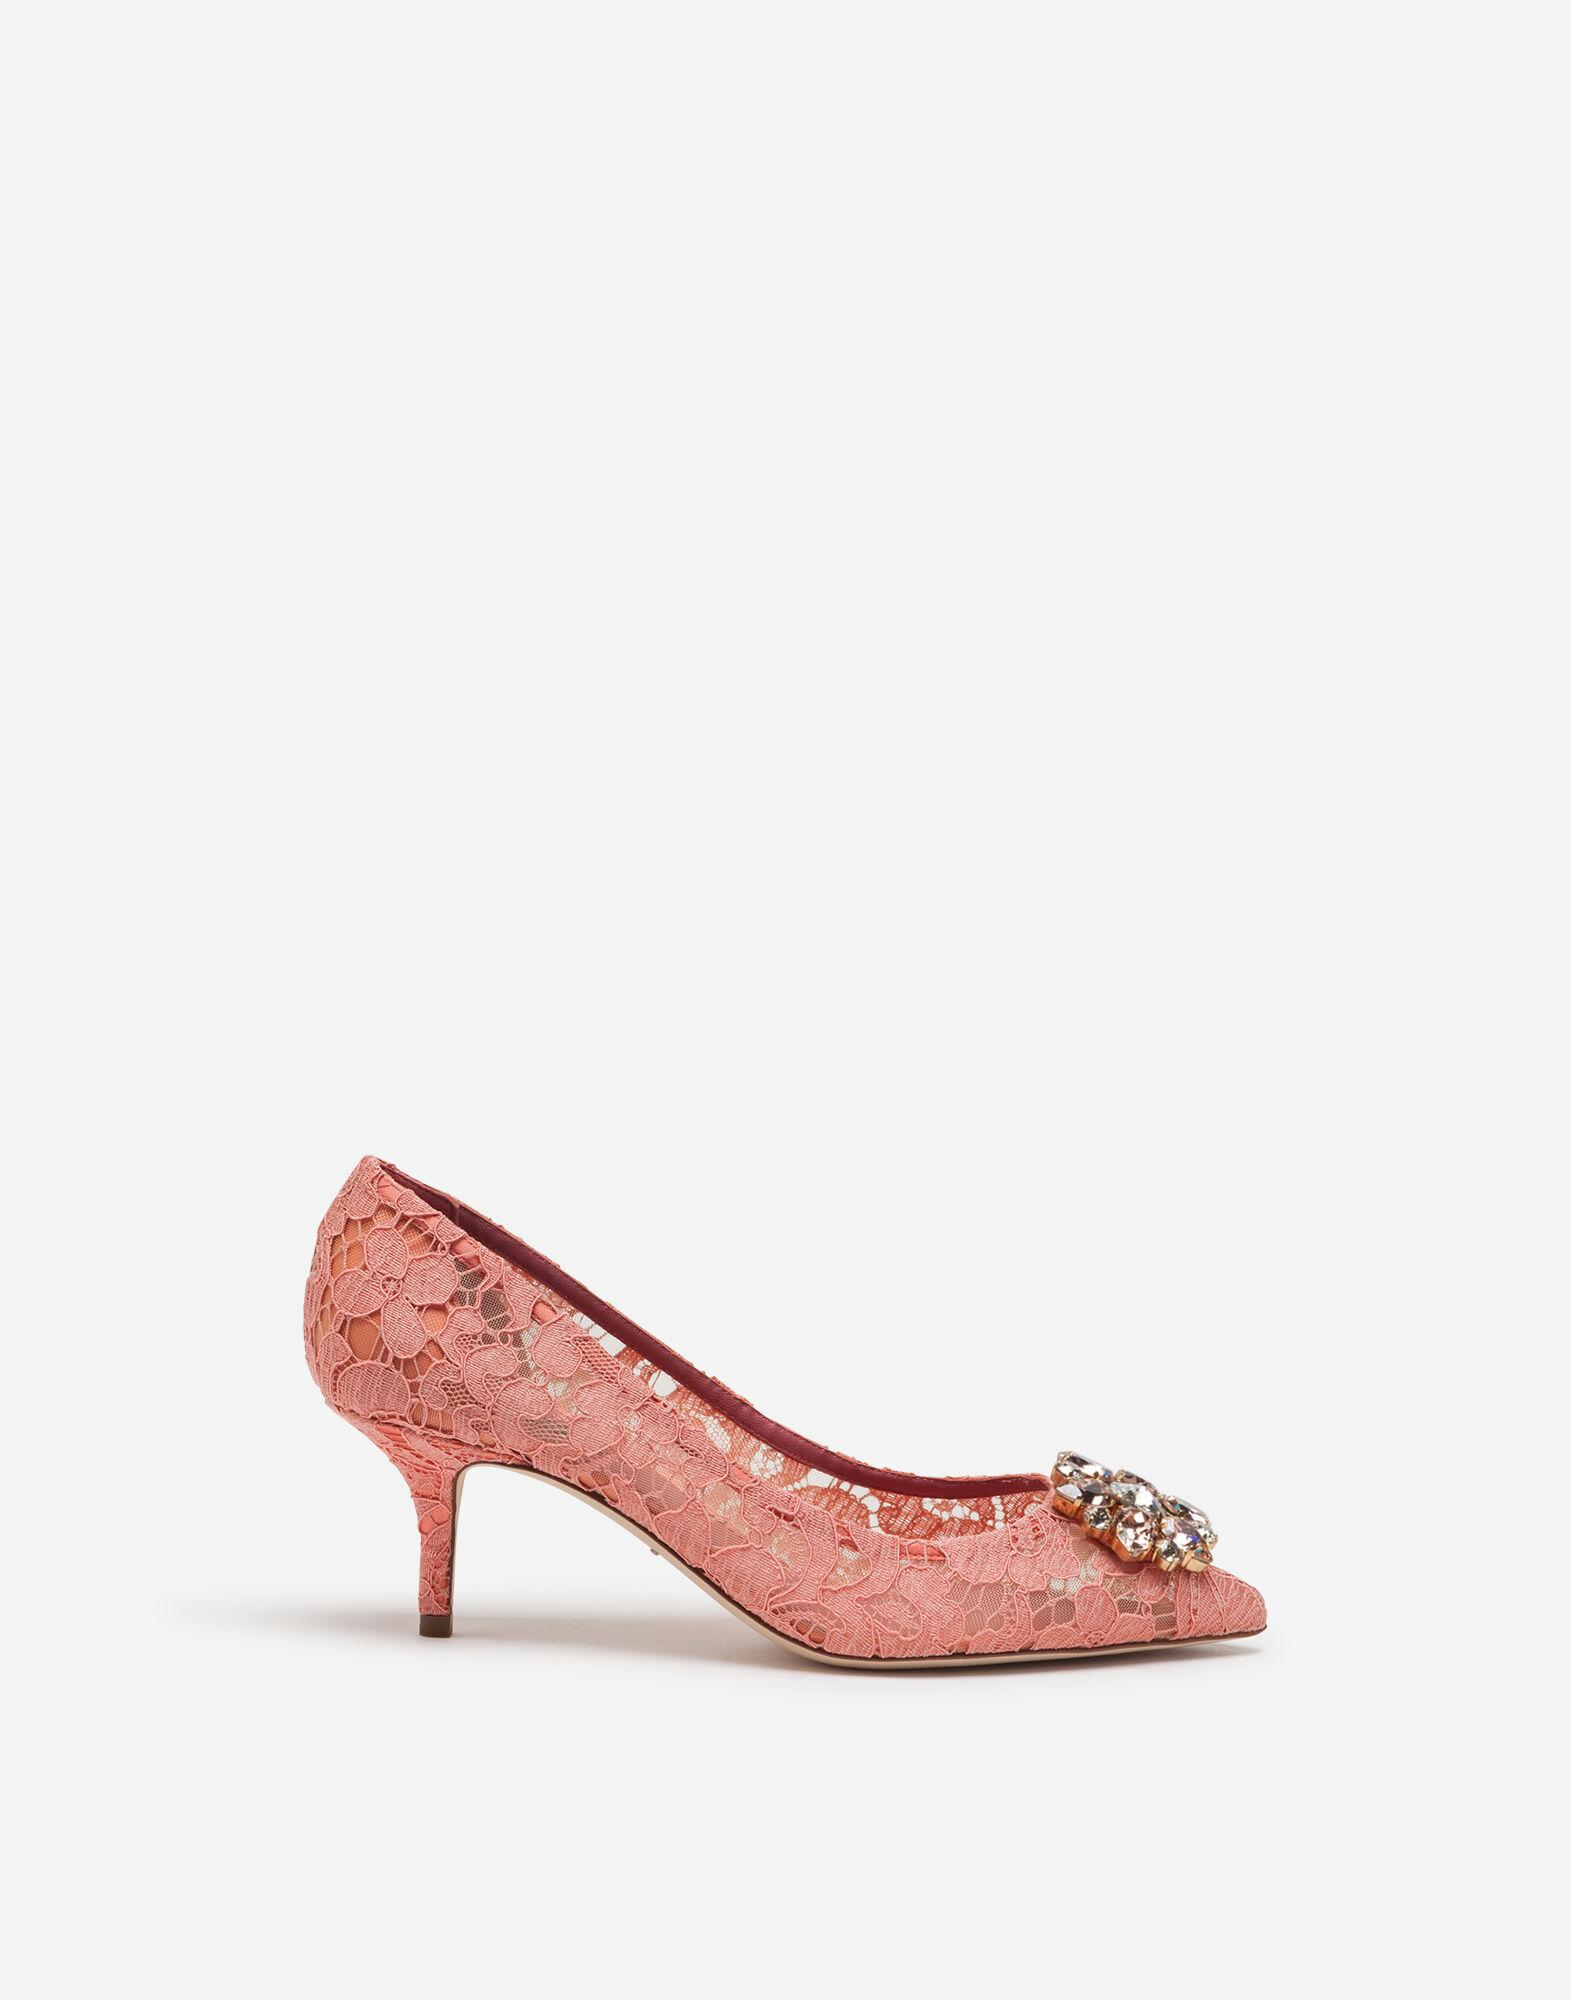 Taormina lace pumps with crystals